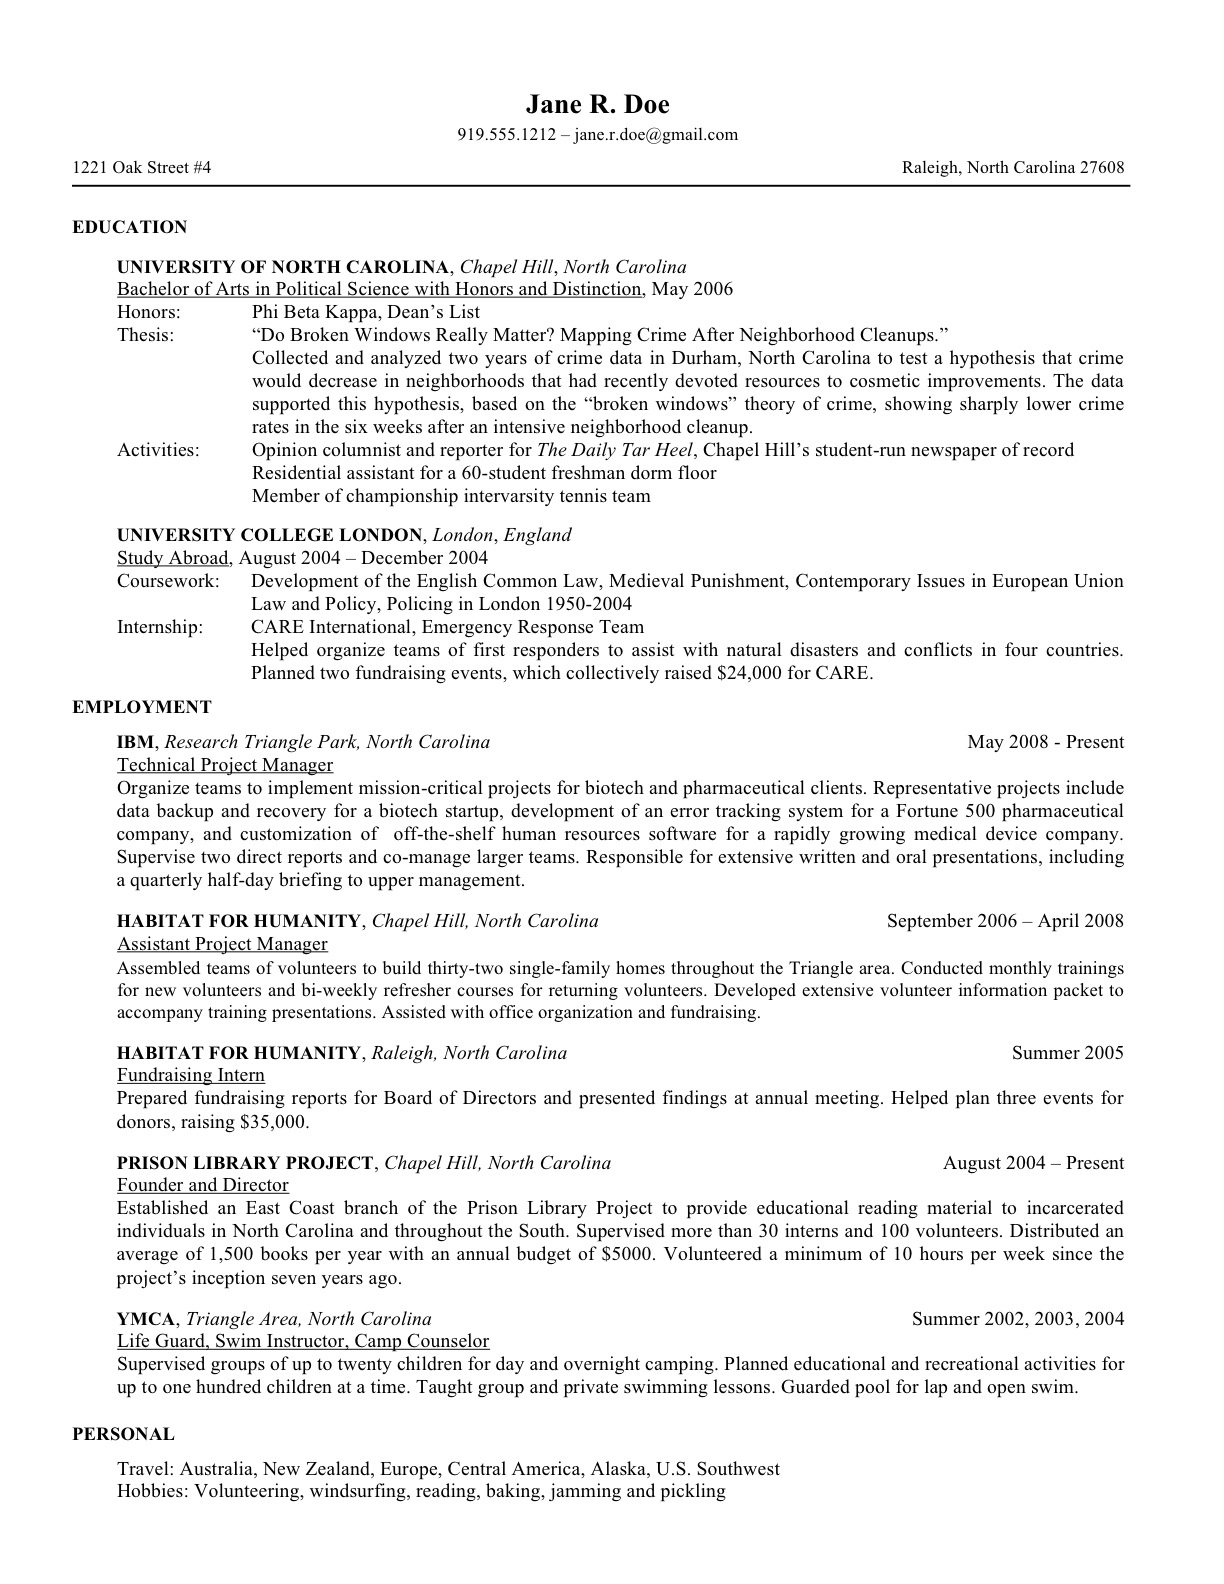 law school resume templates prepping your for of university at transfer student Resume Transfer Student Resume